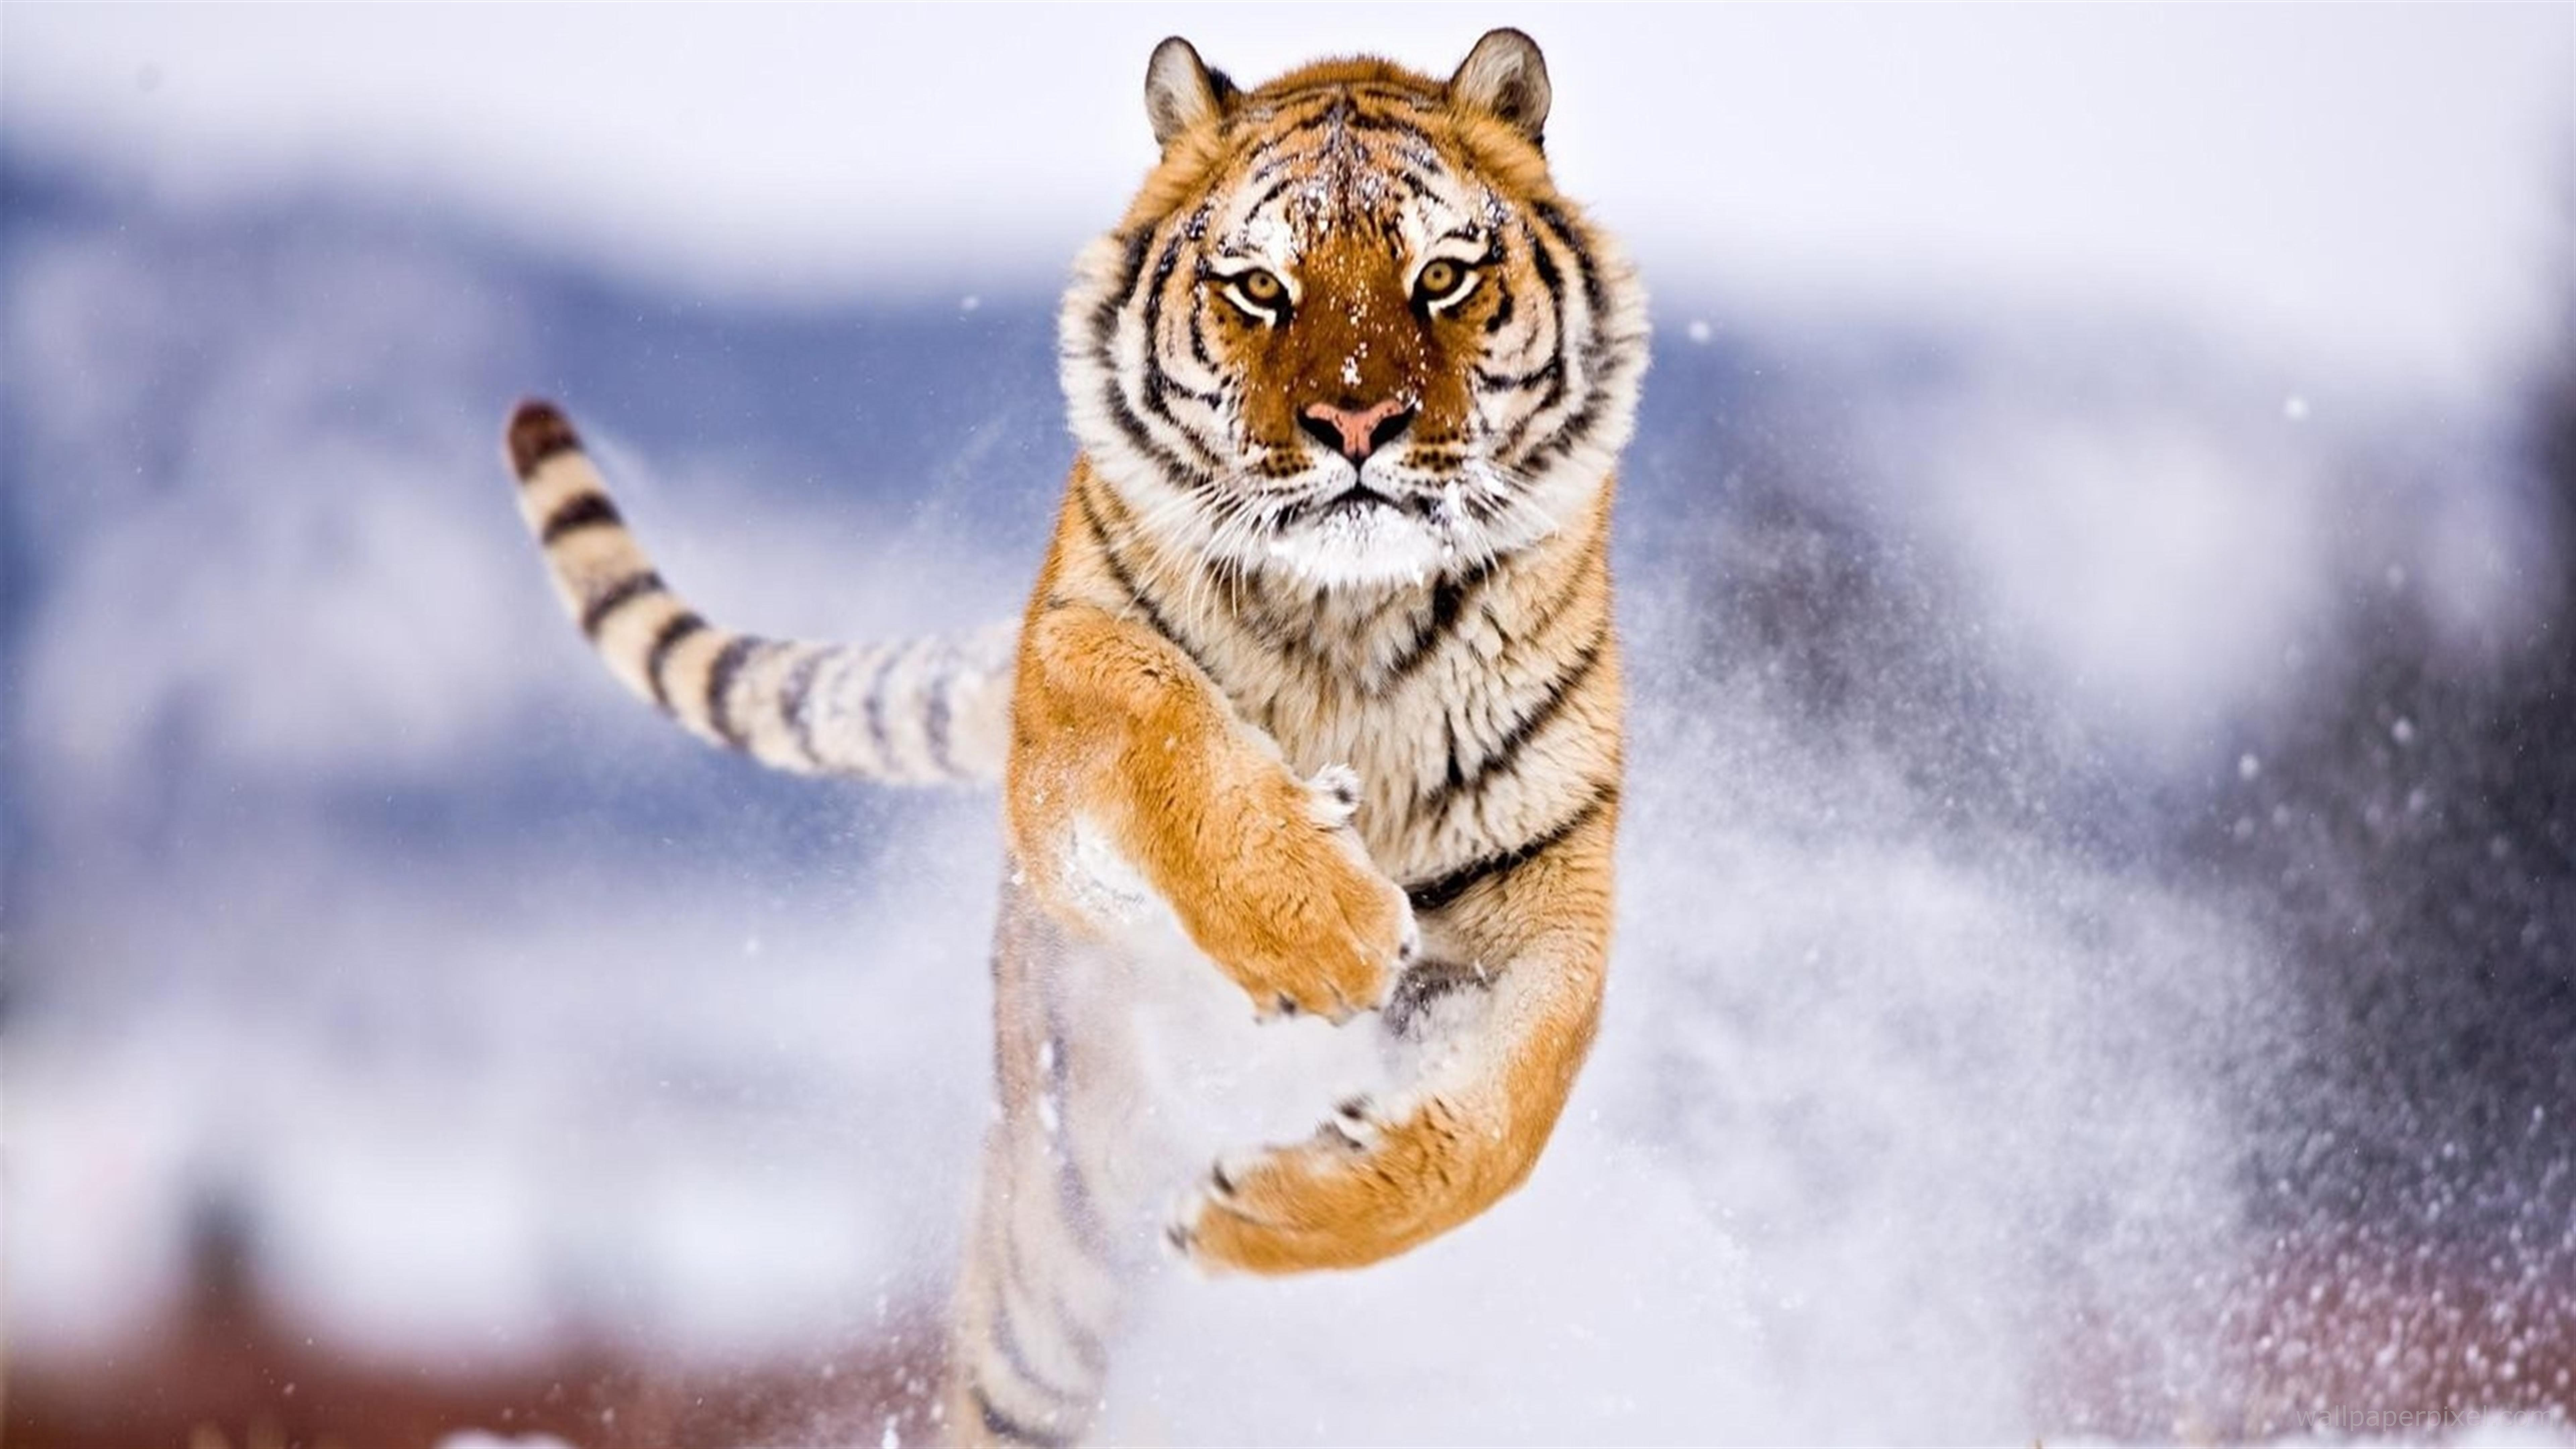 7680x4320 Tiger In Snow 8k Hd 4k Wallpapers Images Backgrounds Photos And Pictures